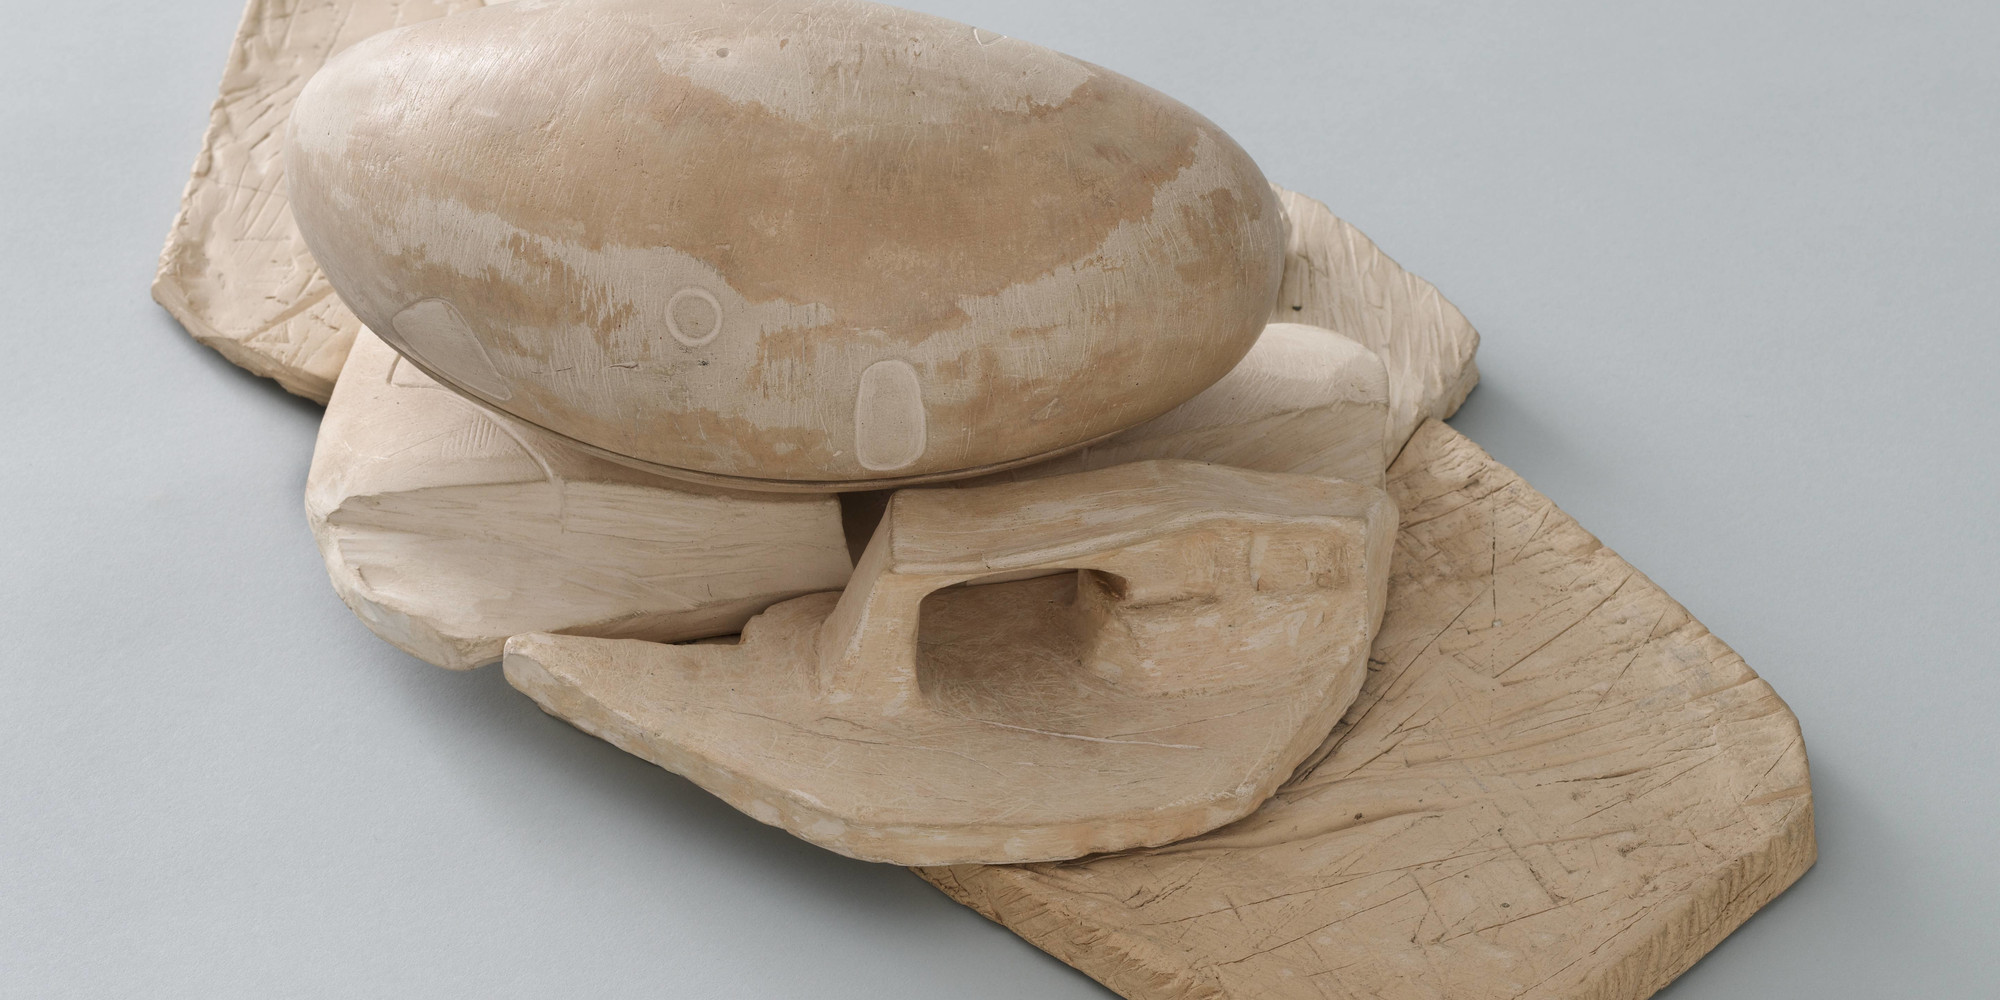 "Frederick Kiesler. Endless House Project. 1950–60. Ceramic, 20 × 11 1/2 × 6"" (50.8 × 29.2 × 15.2 cm). Purchase"